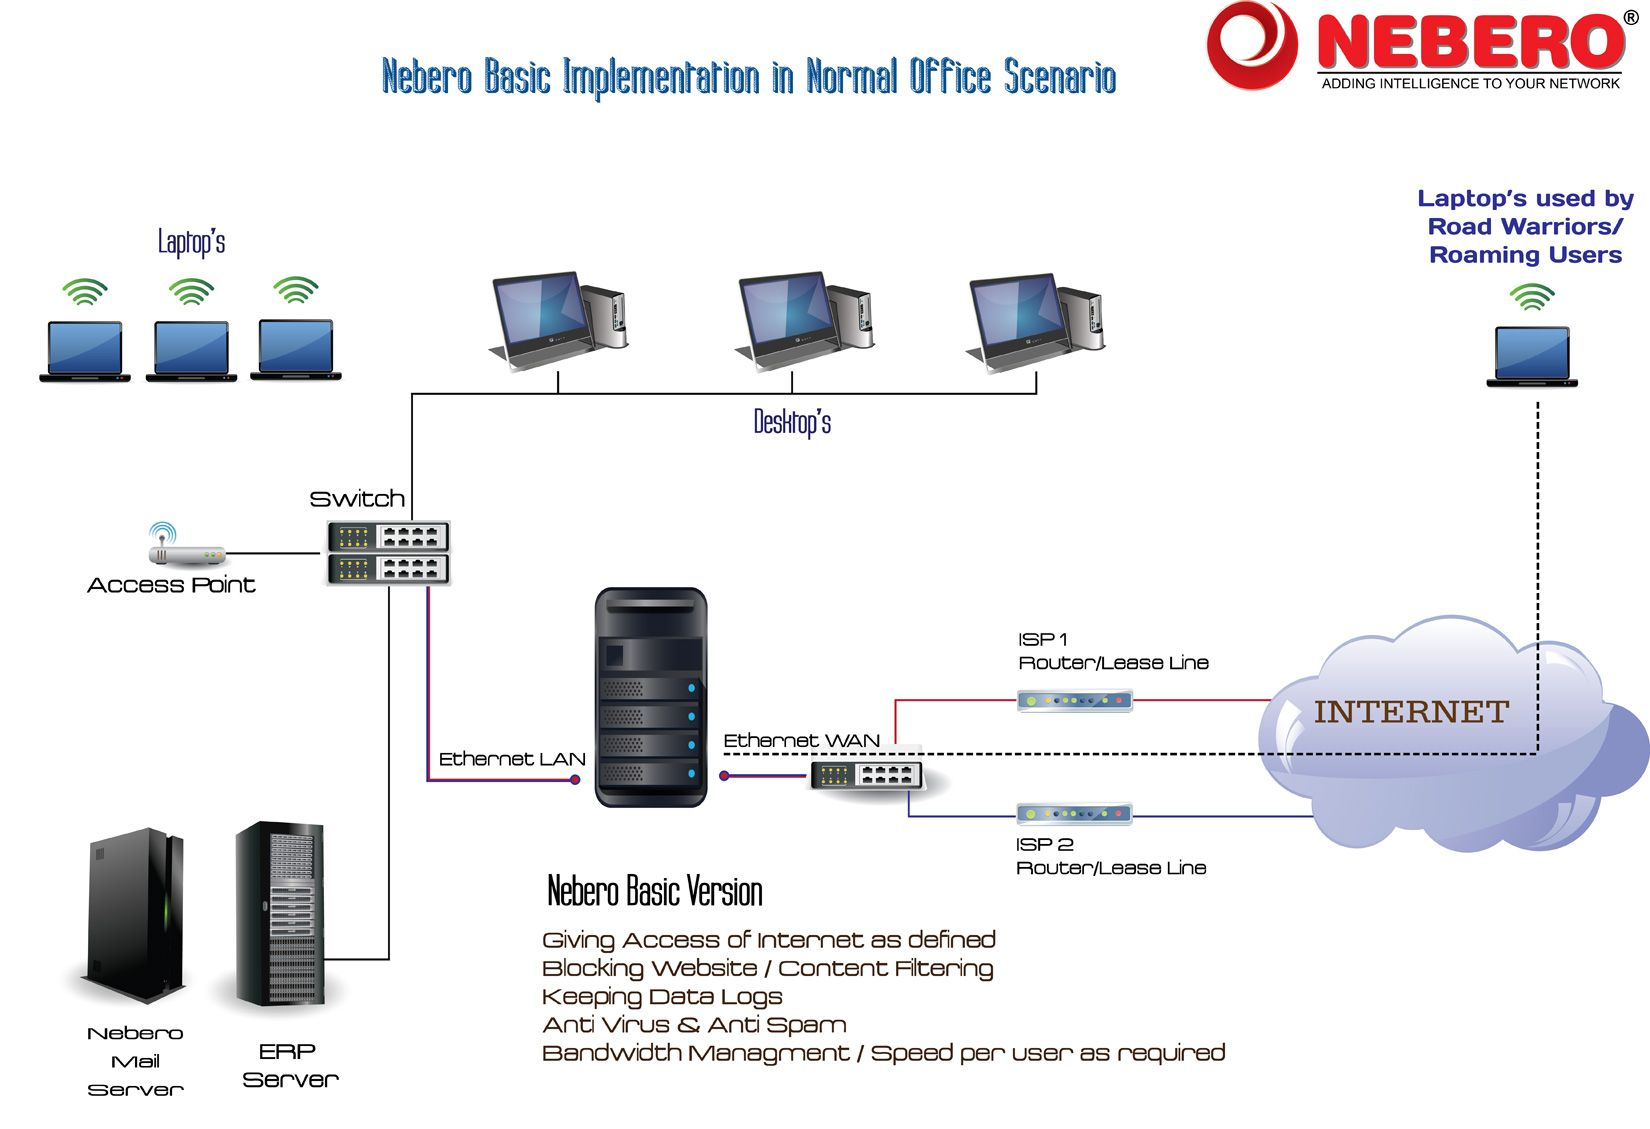 Nebero Systems has quickly one of the industry